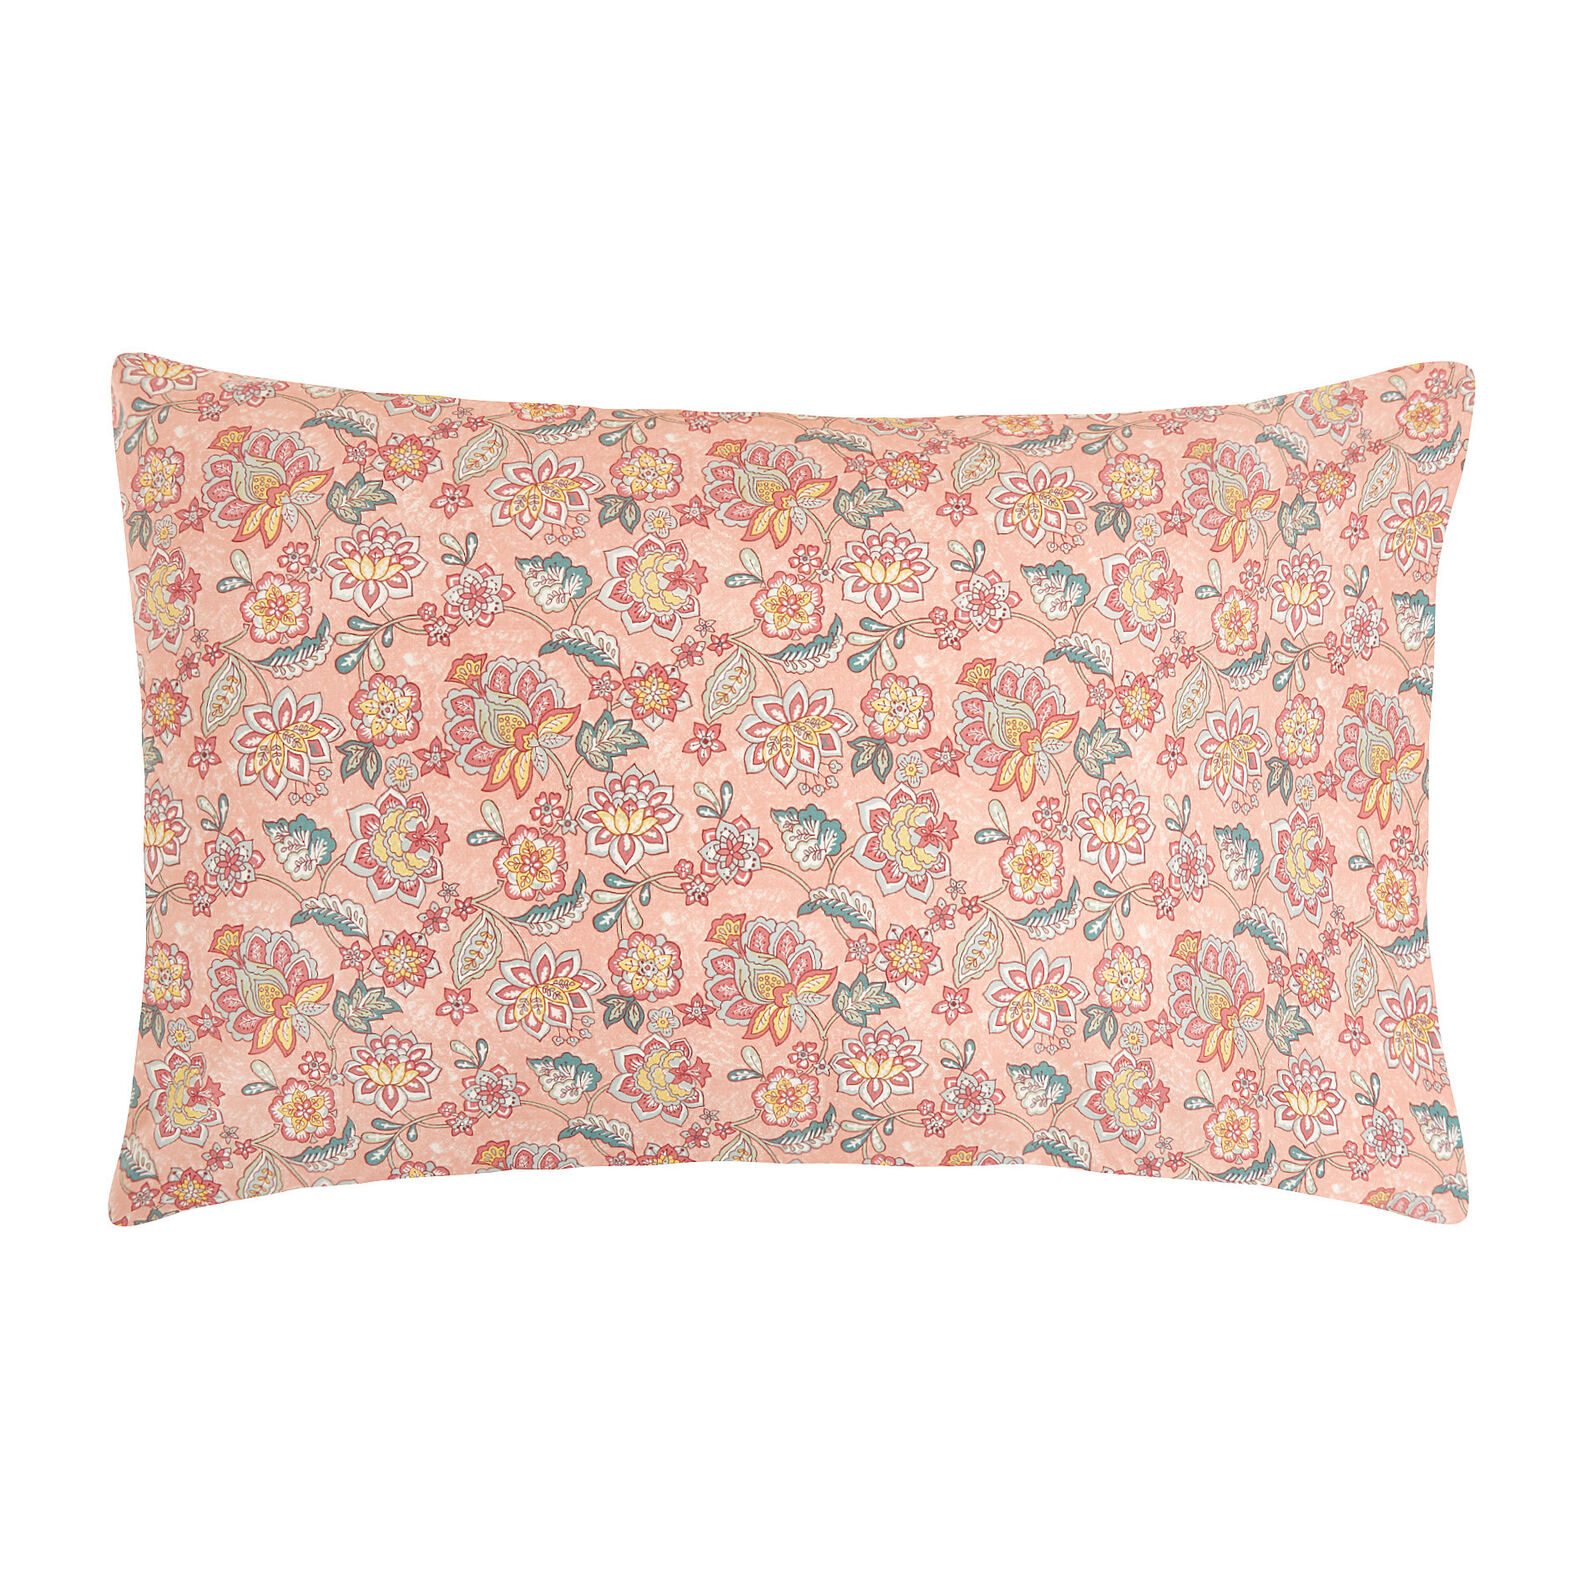 Organic cotton pillowcase with flower pattern